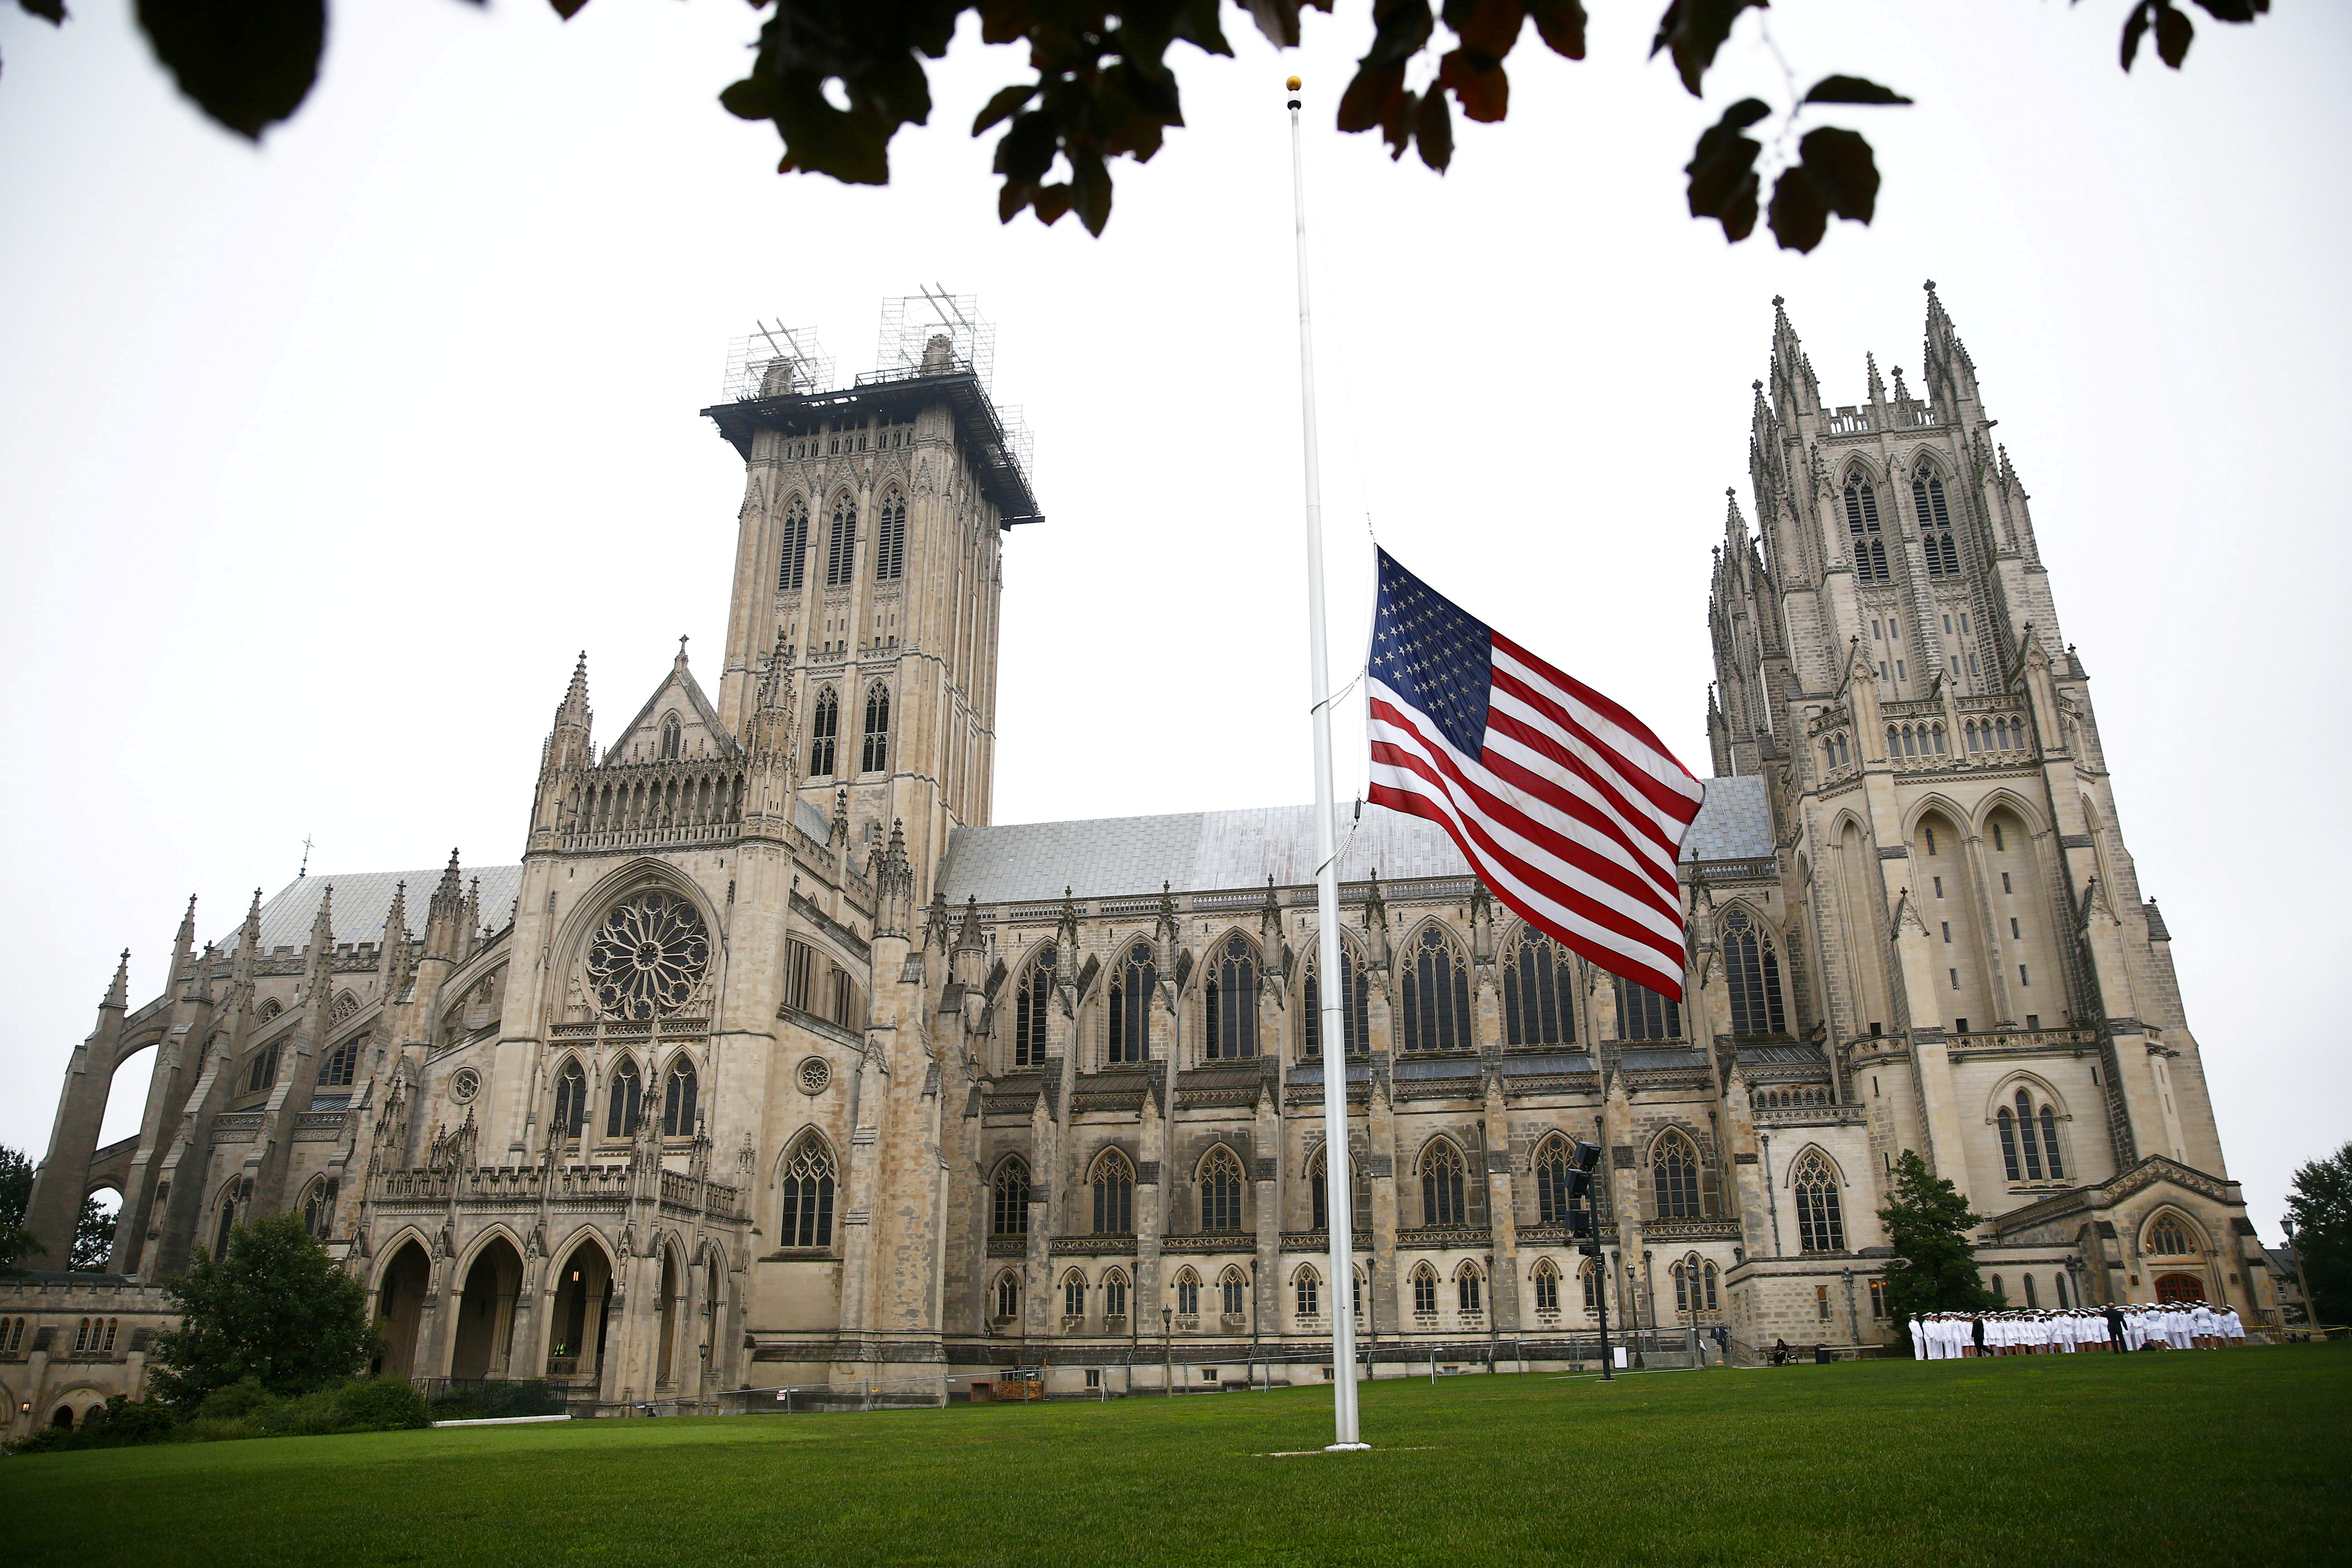 A flag flies at half staff in front of the Washington National Cathedral ahead of a ceremony for the late Senator John McCain in Washington, U.S. September 1, 2018. REUTERS/Eric Thayer